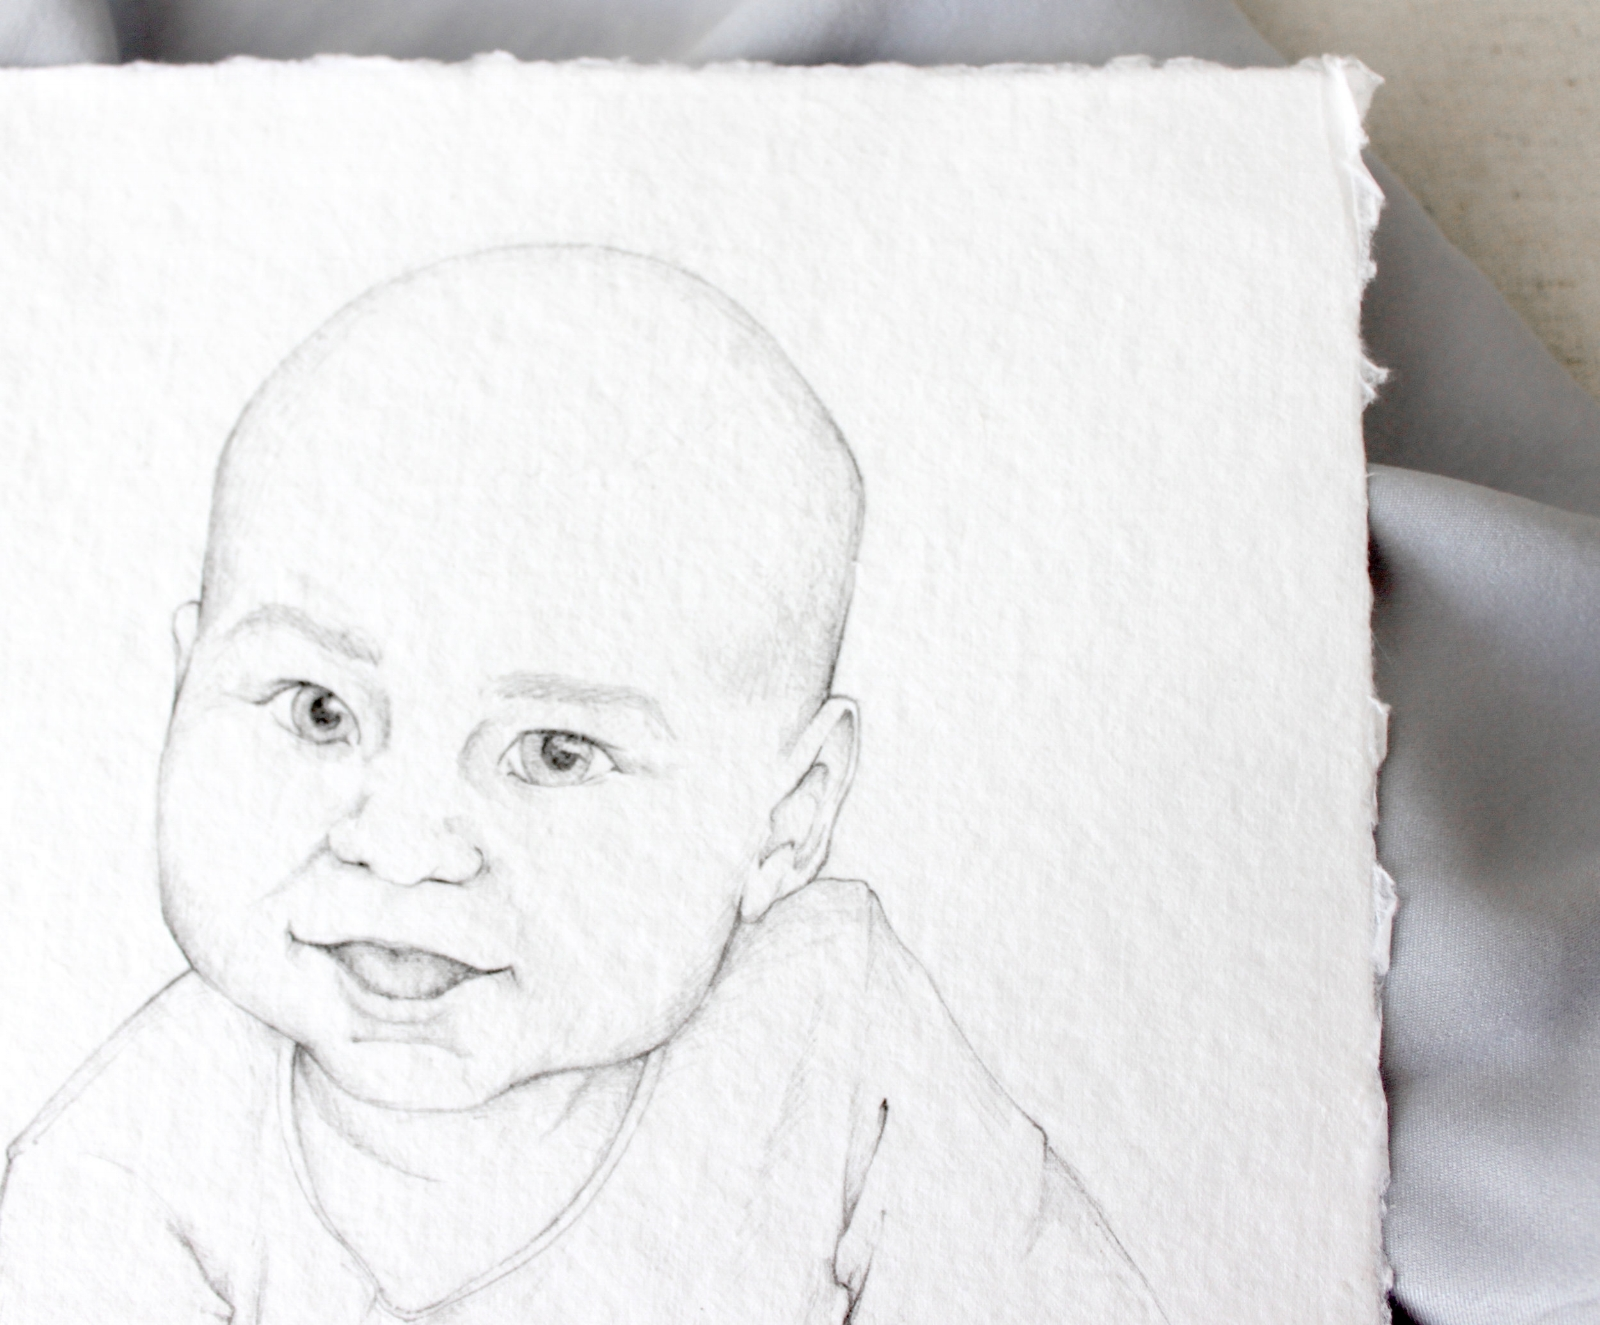 Custom portrait of baby in pencil on handmade paper.  Illustration by Katrina of Blushed Design, paper by Fabulous Fancy Pants. #fineartportrait #pencildrawing #customportrait